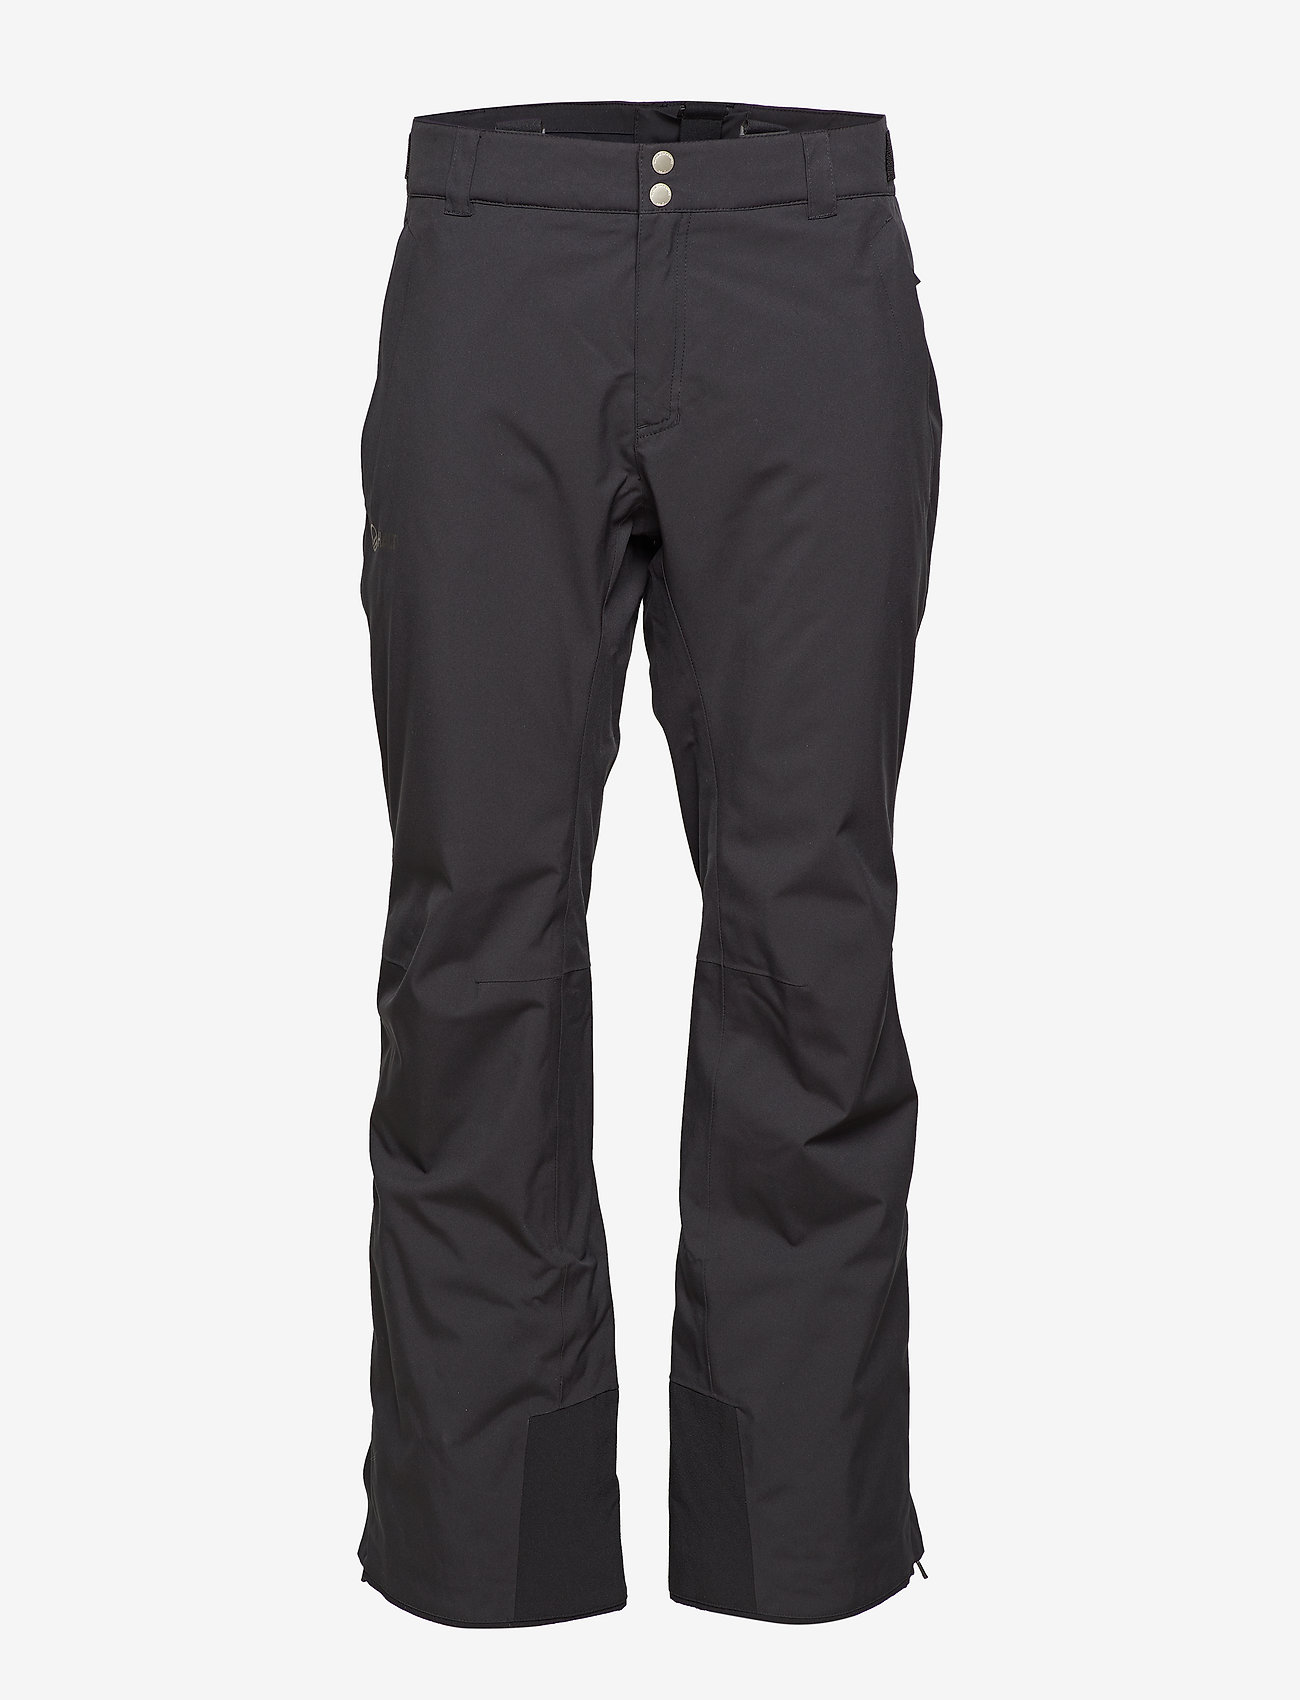 Halti - Puntti II M DX ski pants - insulated pantsinsulated pants - black - 0